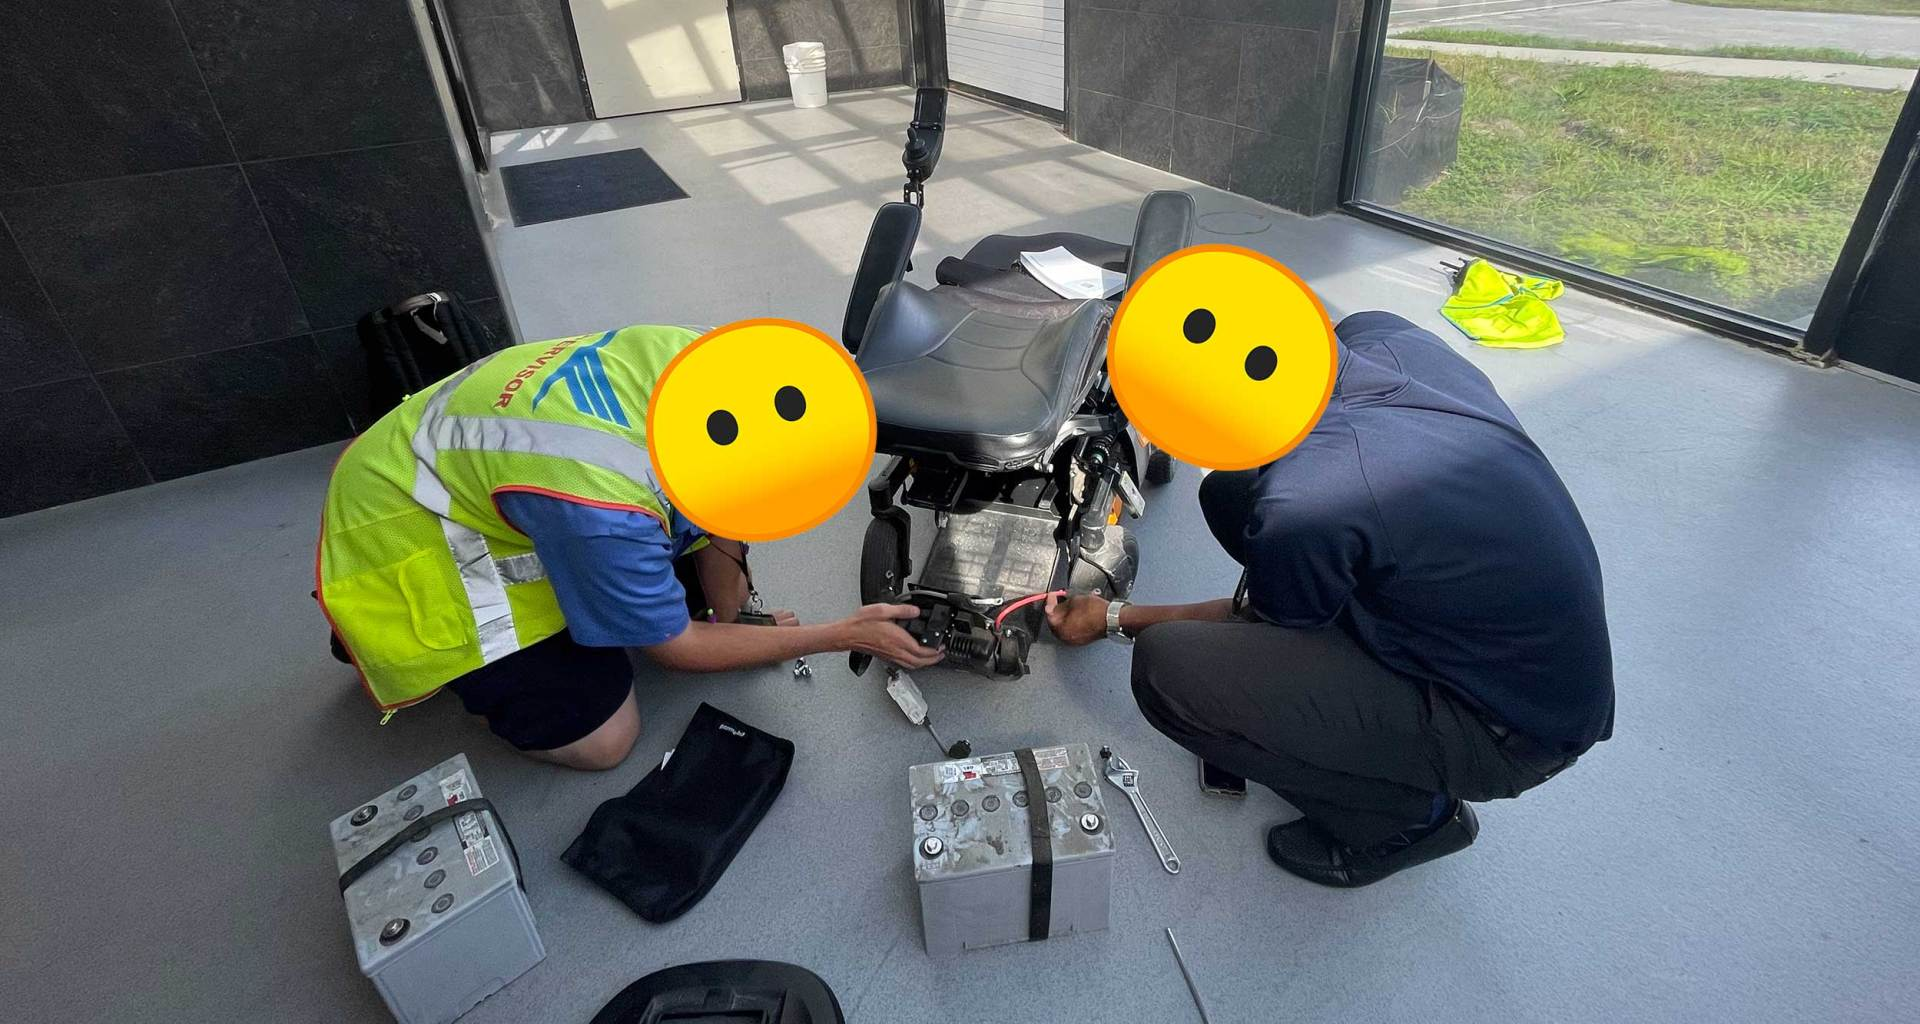 Two airline staff persons disassembling a power wheelchair with batteries removed.